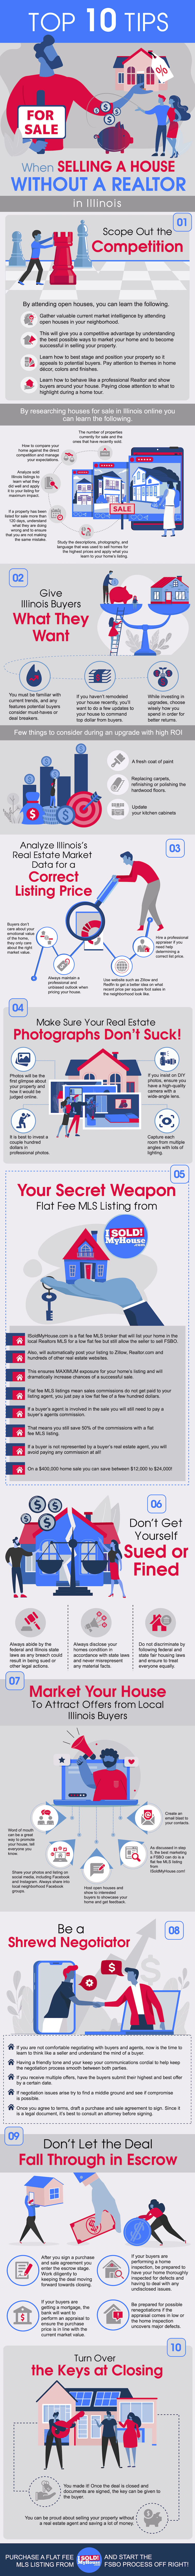 infographic of the 10 steps to sell a house in illinois without an agent